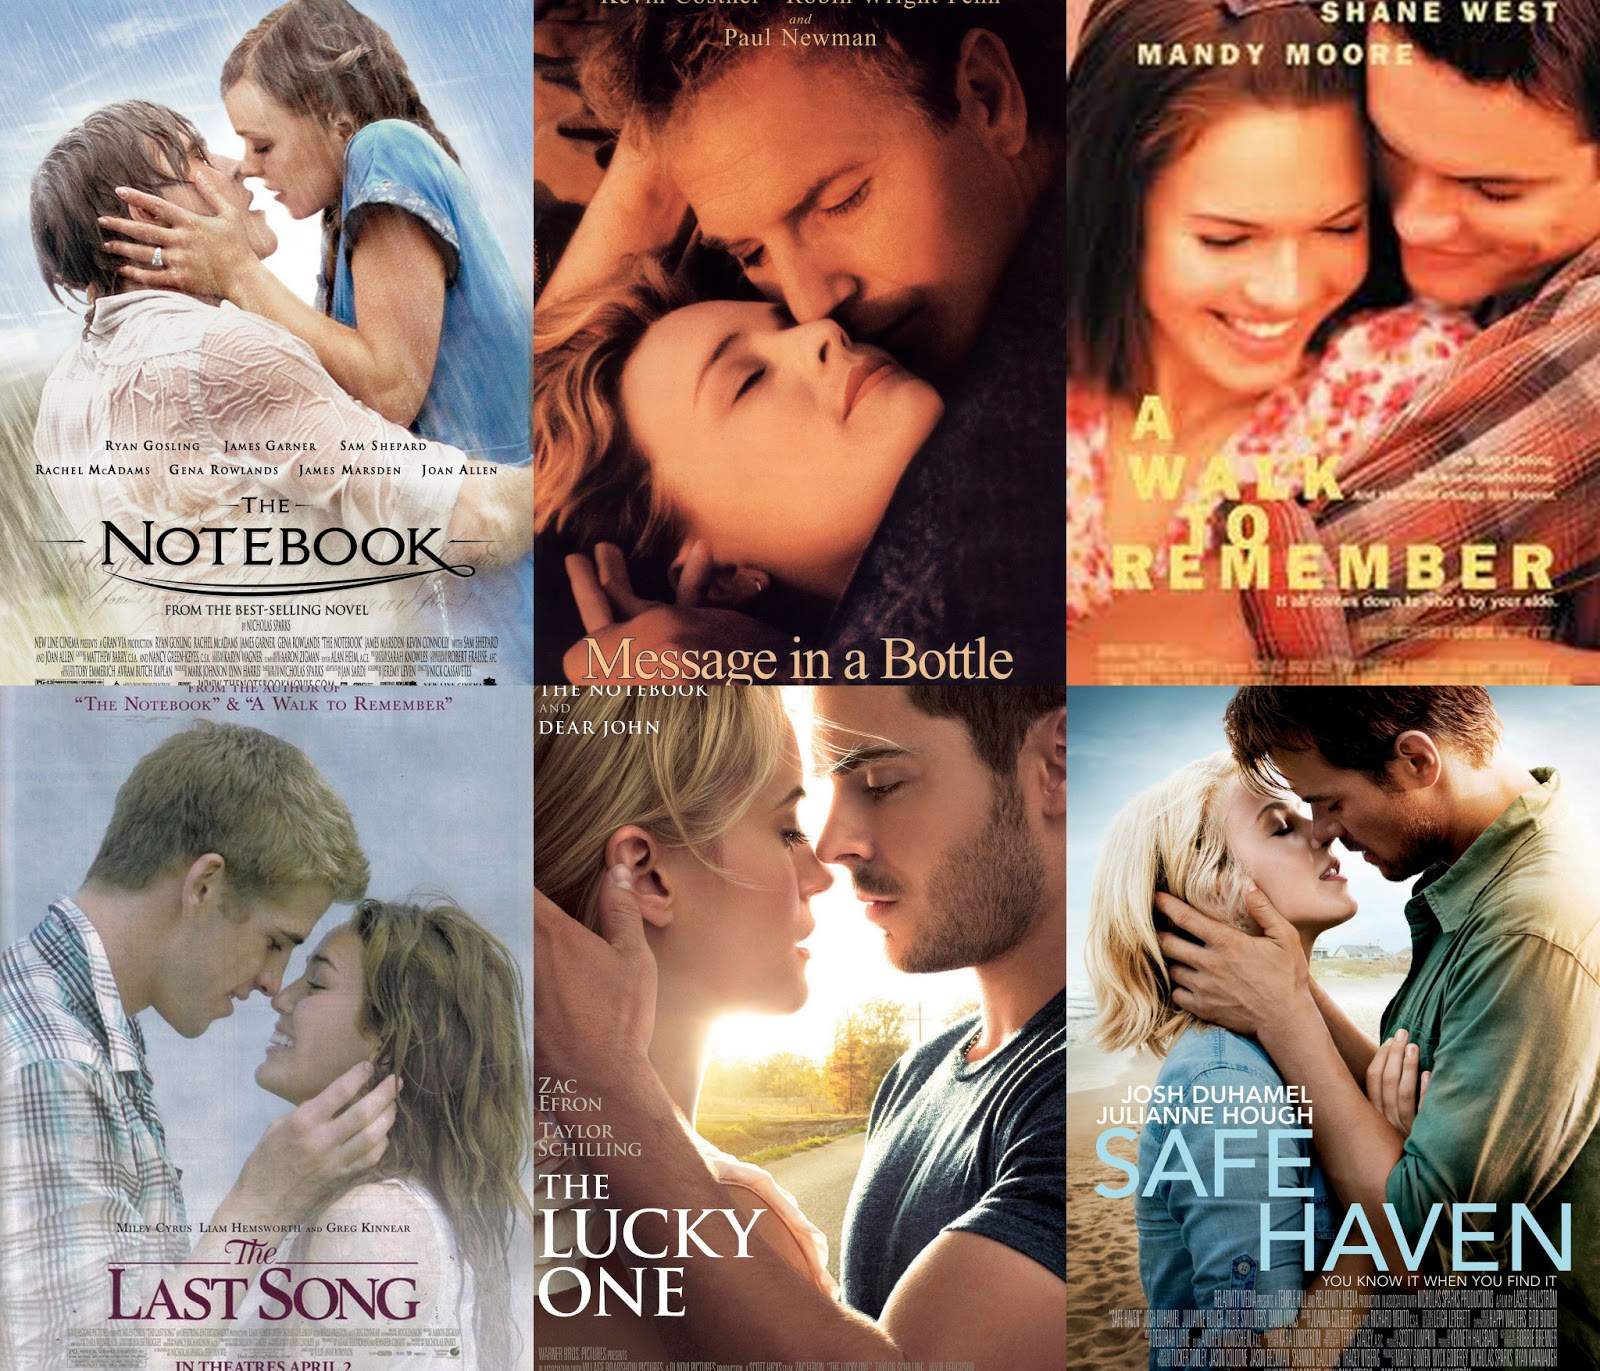 Safe Haven Nicholas Sparks Movies